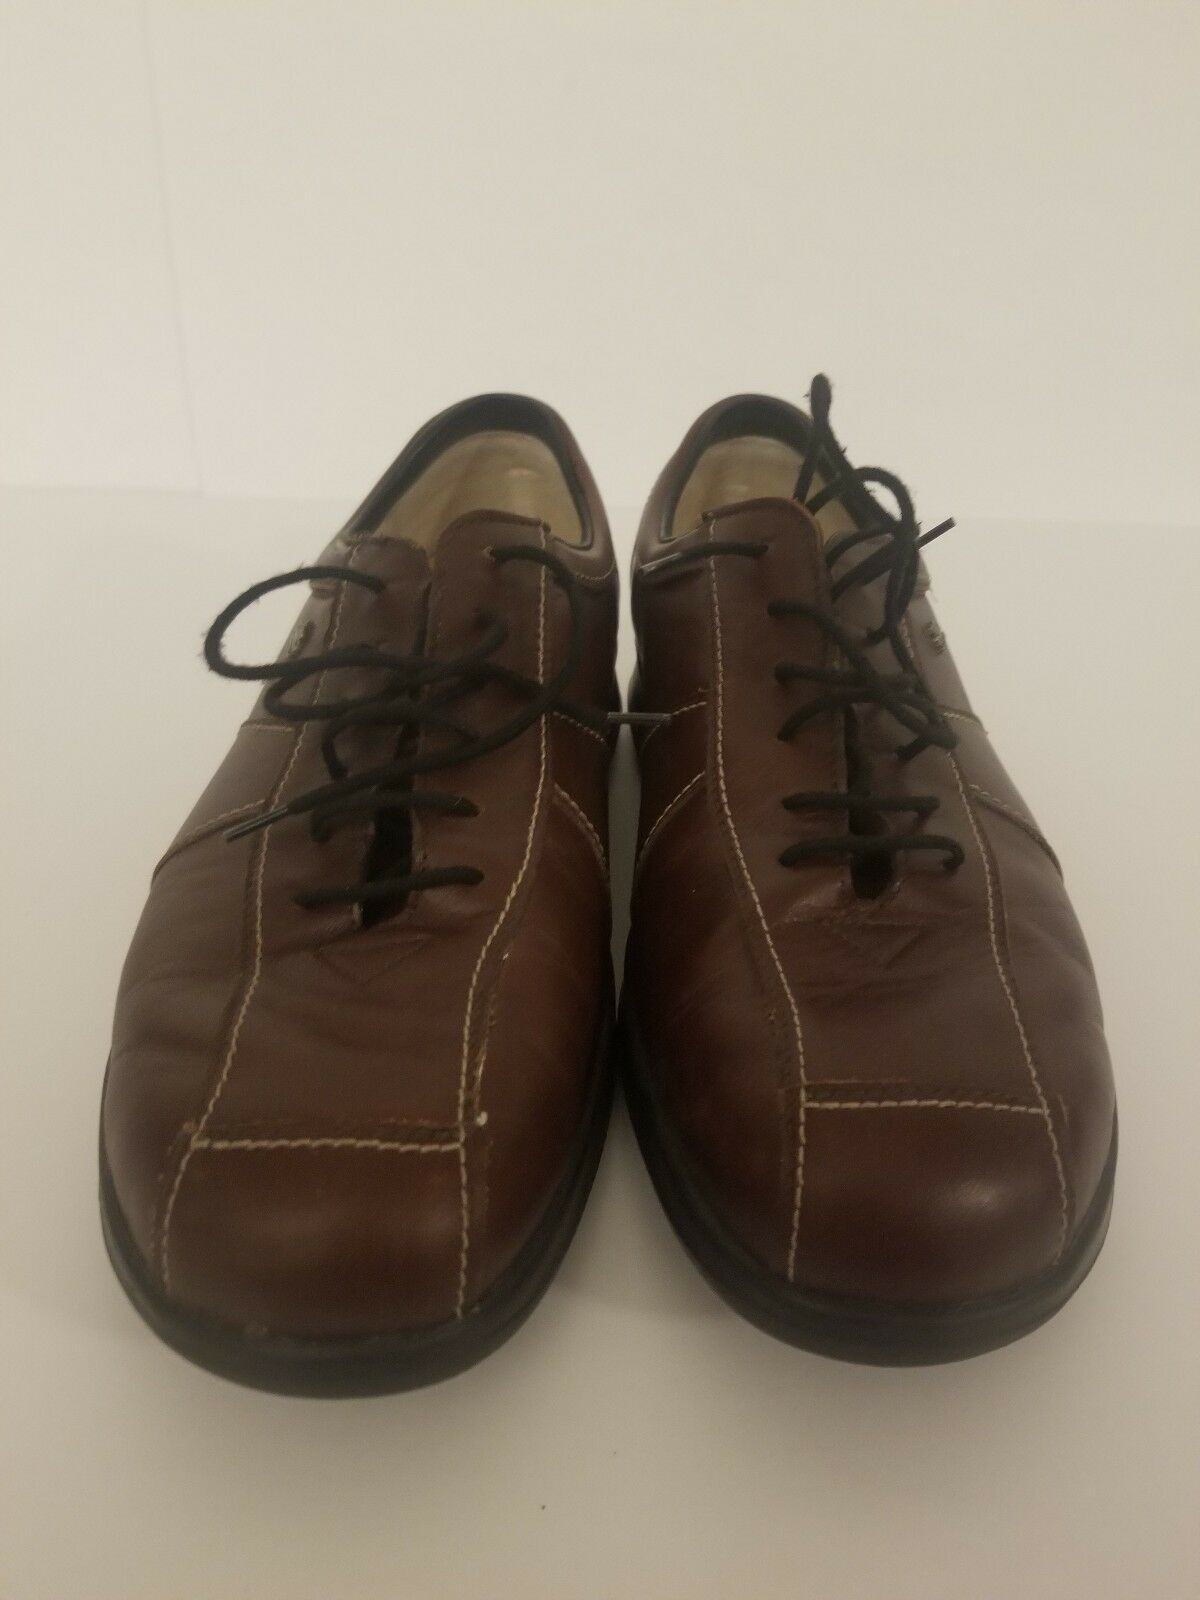 345 Finn Comfort Womens Soft Soho Brown Leather Leather Leather Oxford shoes Sz 7 UK Sz 9.5 US c4d4f6